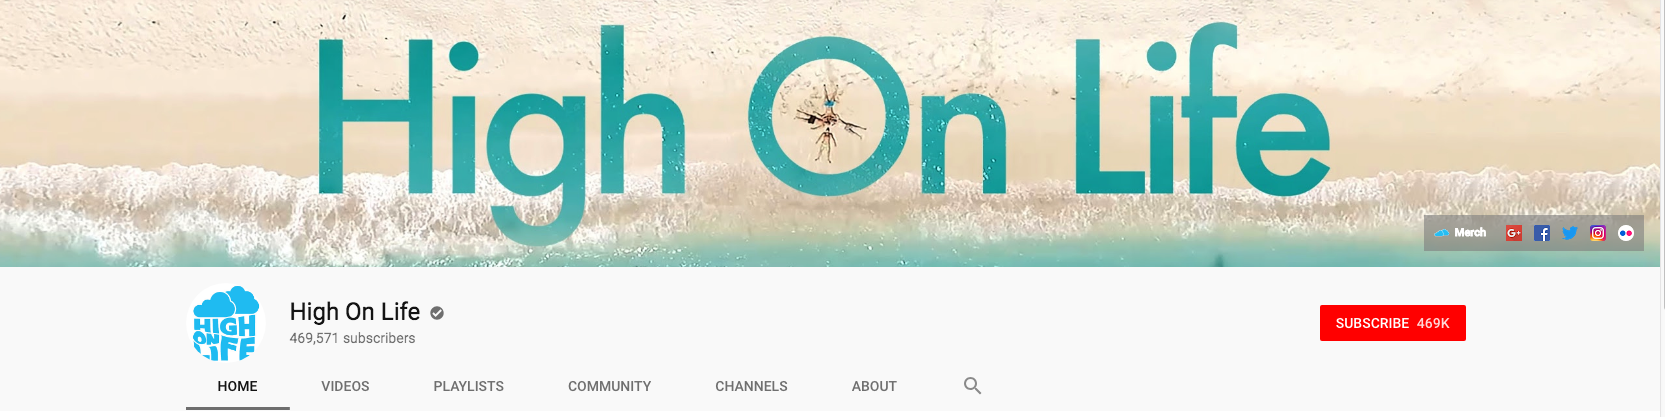 YouTube banner for High on Life channel